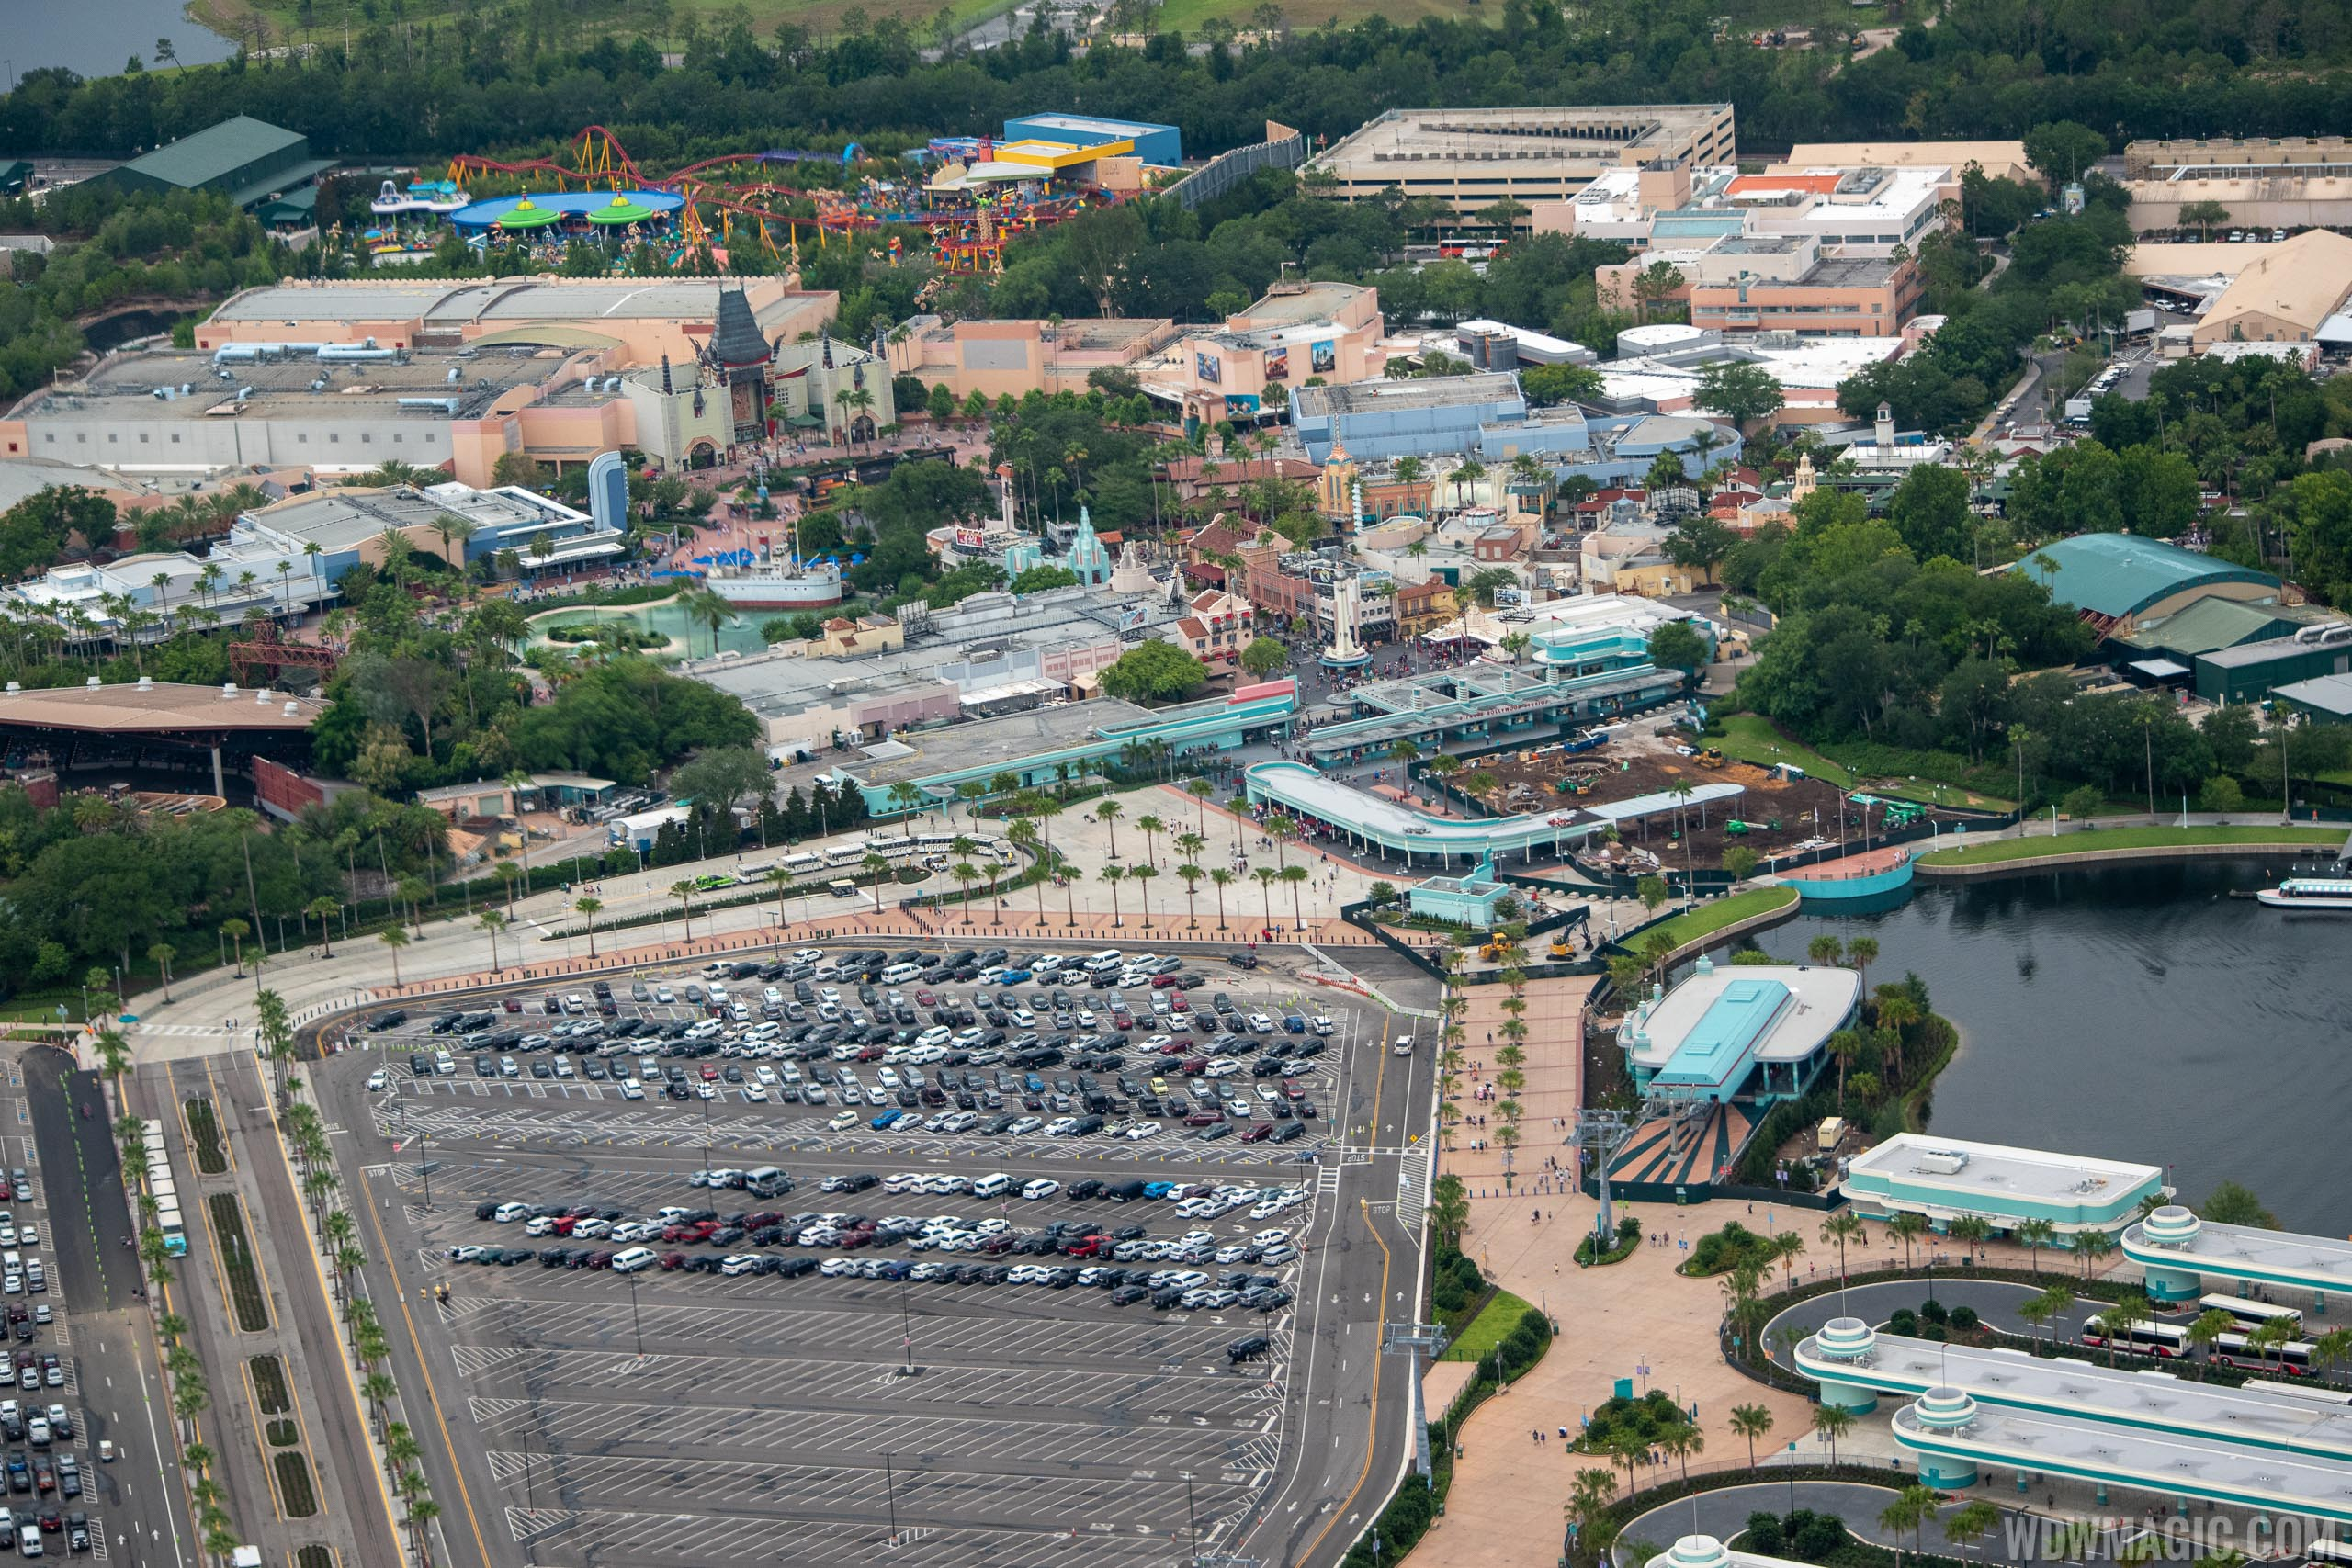 Main entrance construction from the air - June 2019